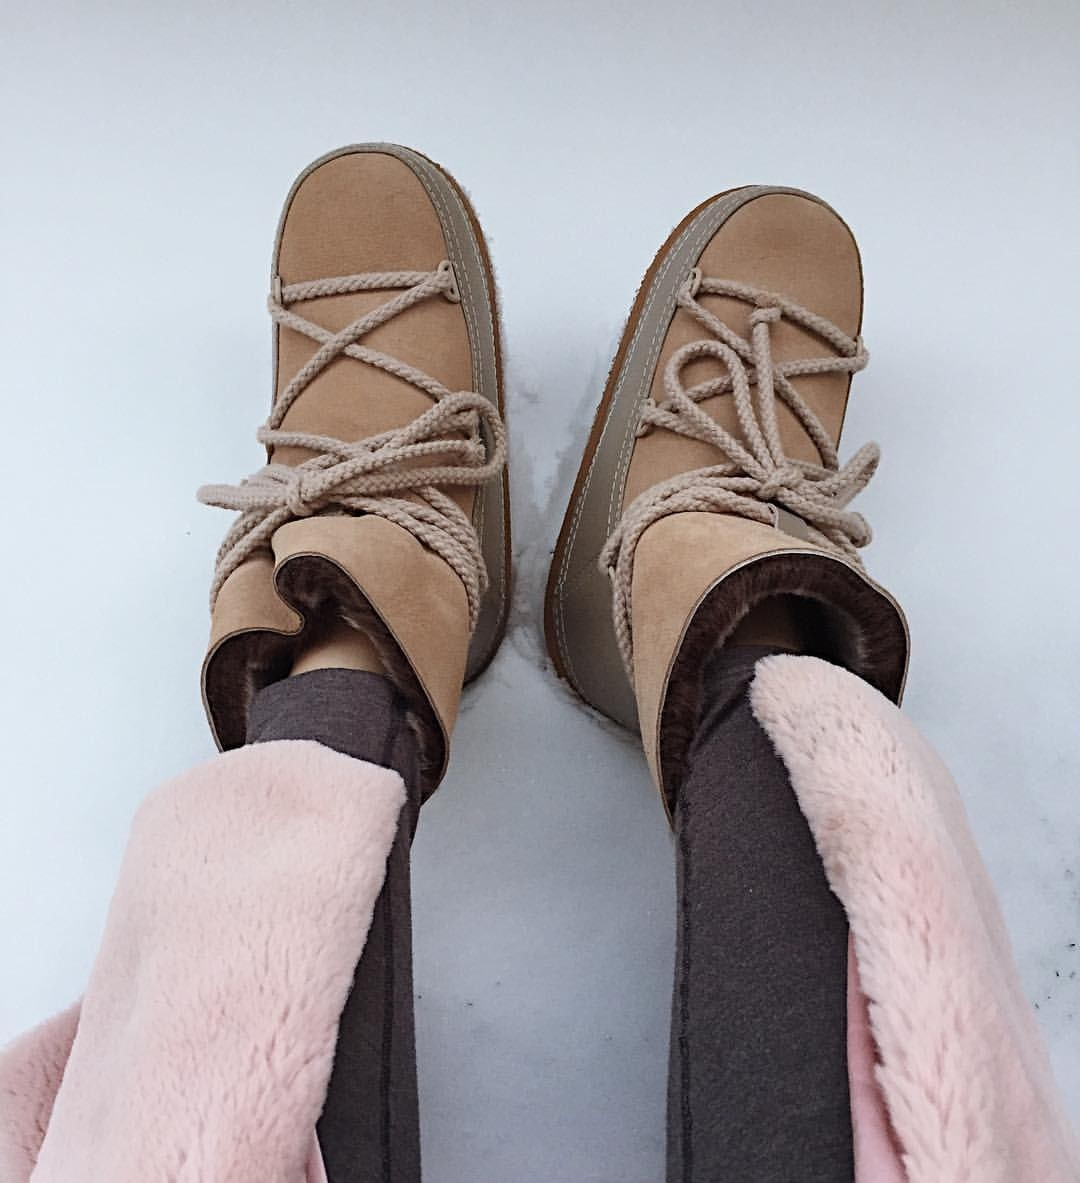 boots, fashion, and article image